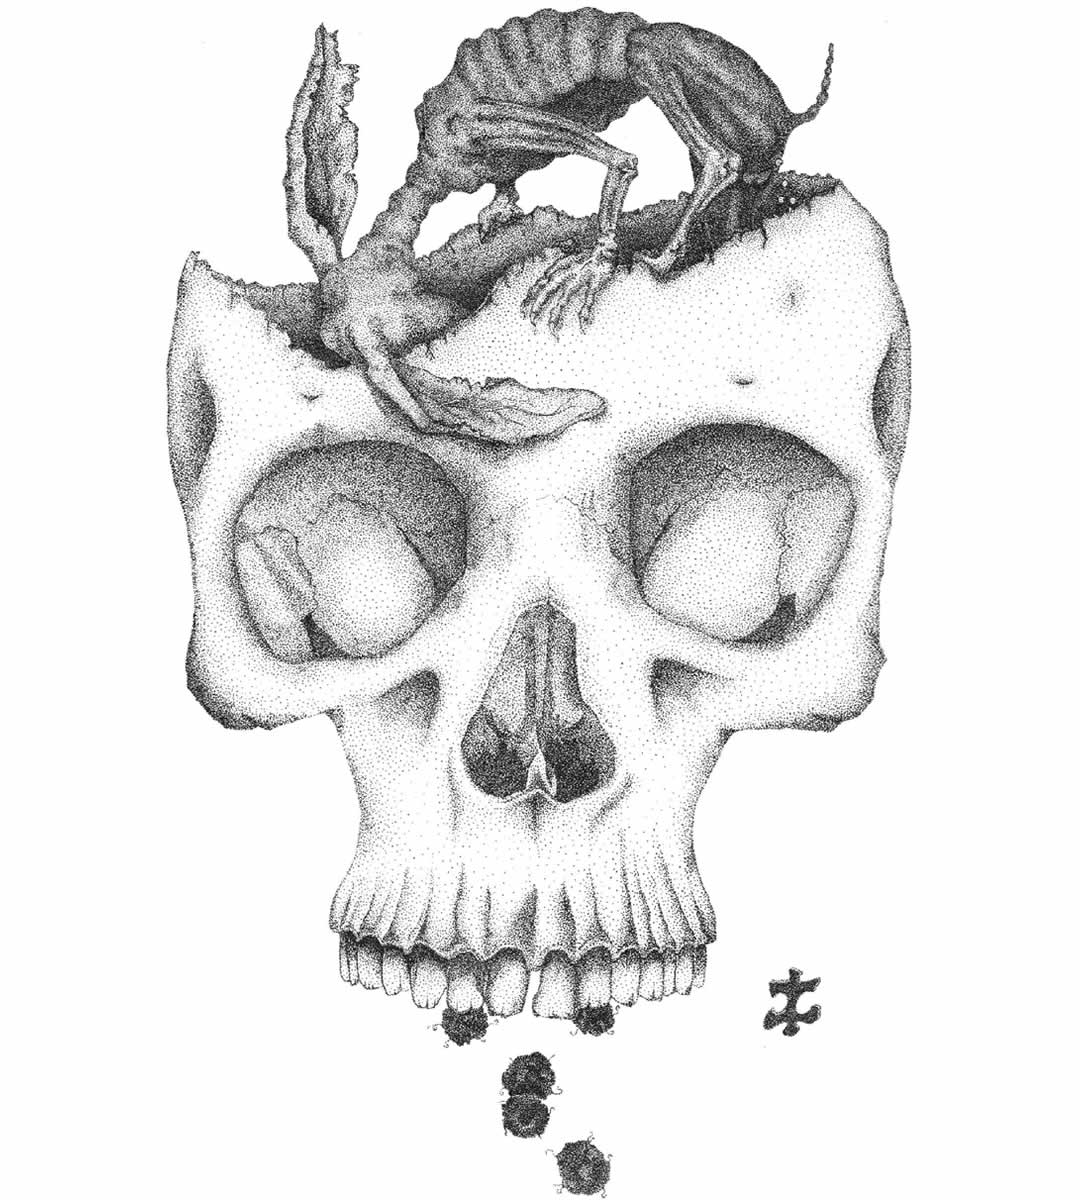 skull-droppings